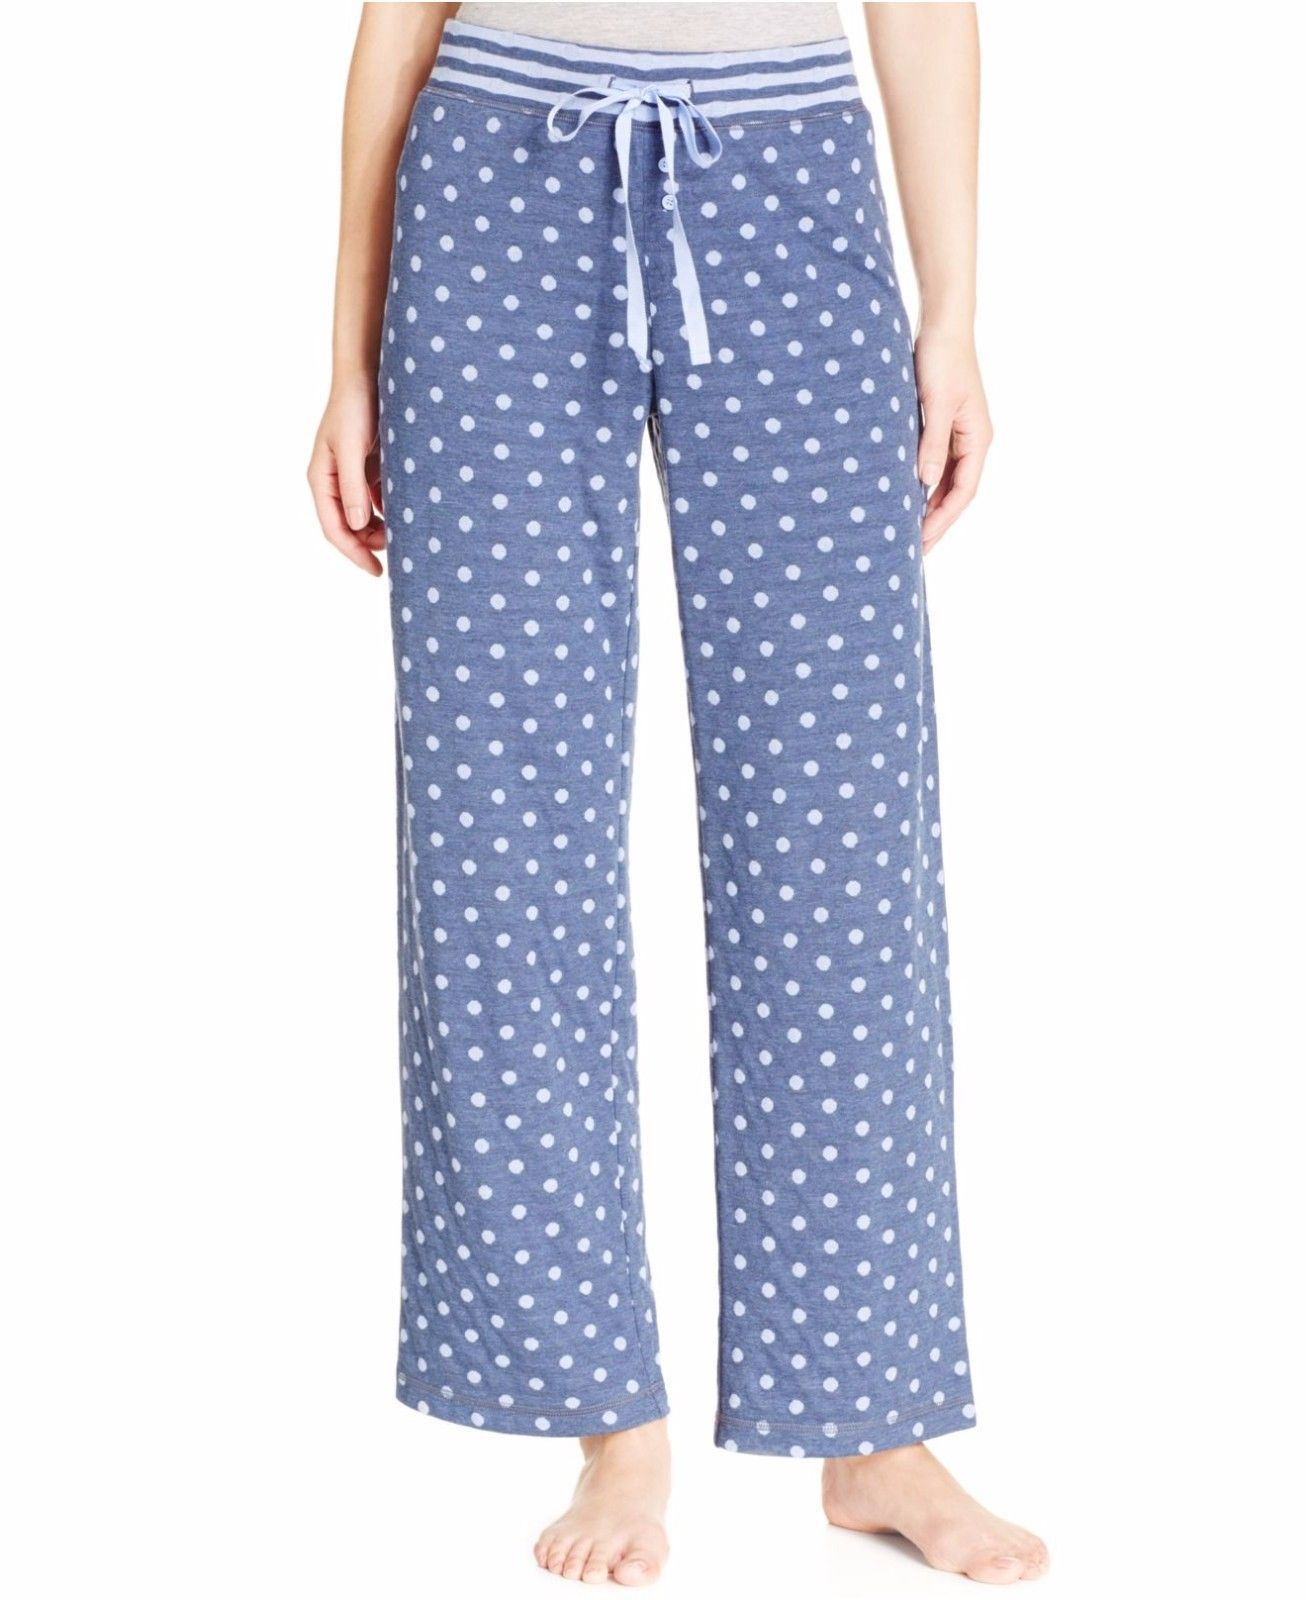 Primary image for Alfani Navy Polka Dots Print Knit Pajama Bottoms, Medium